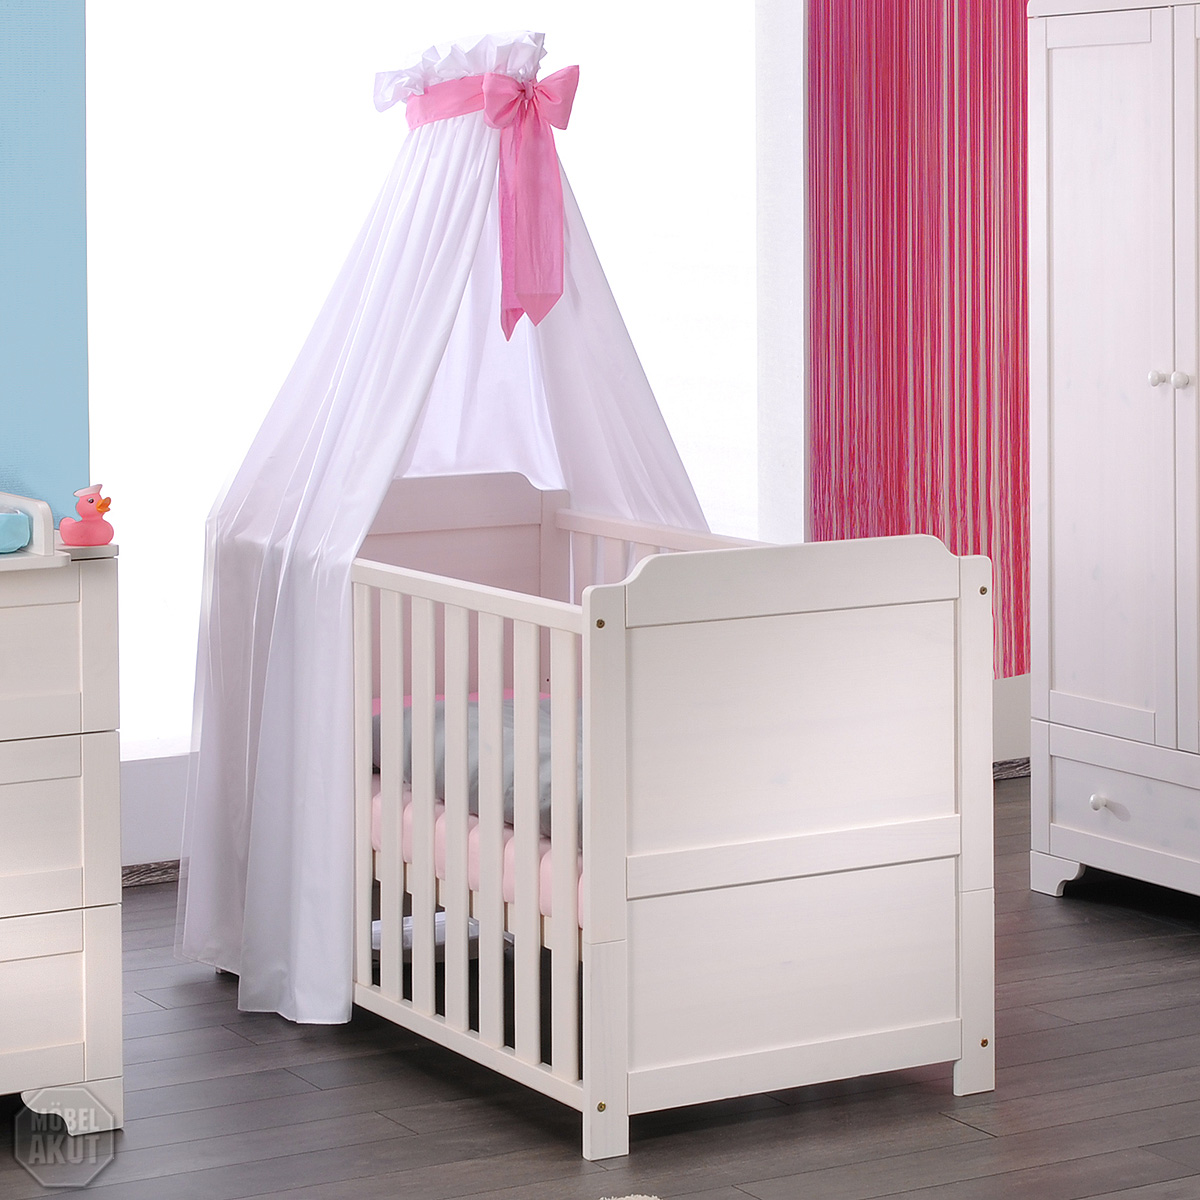 babybett vita kinderbett babyzimmer in kiefer massiv wei gewachst ebay. Black Bedroom Furniture Sets. Home Design Ideas